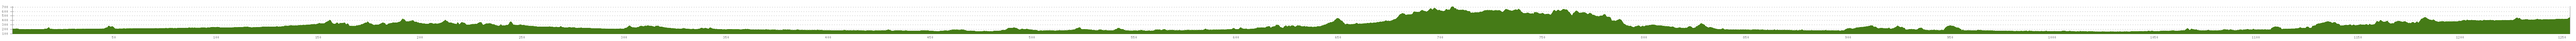 Elevation profile Cycle Tour Cracow - Cheb